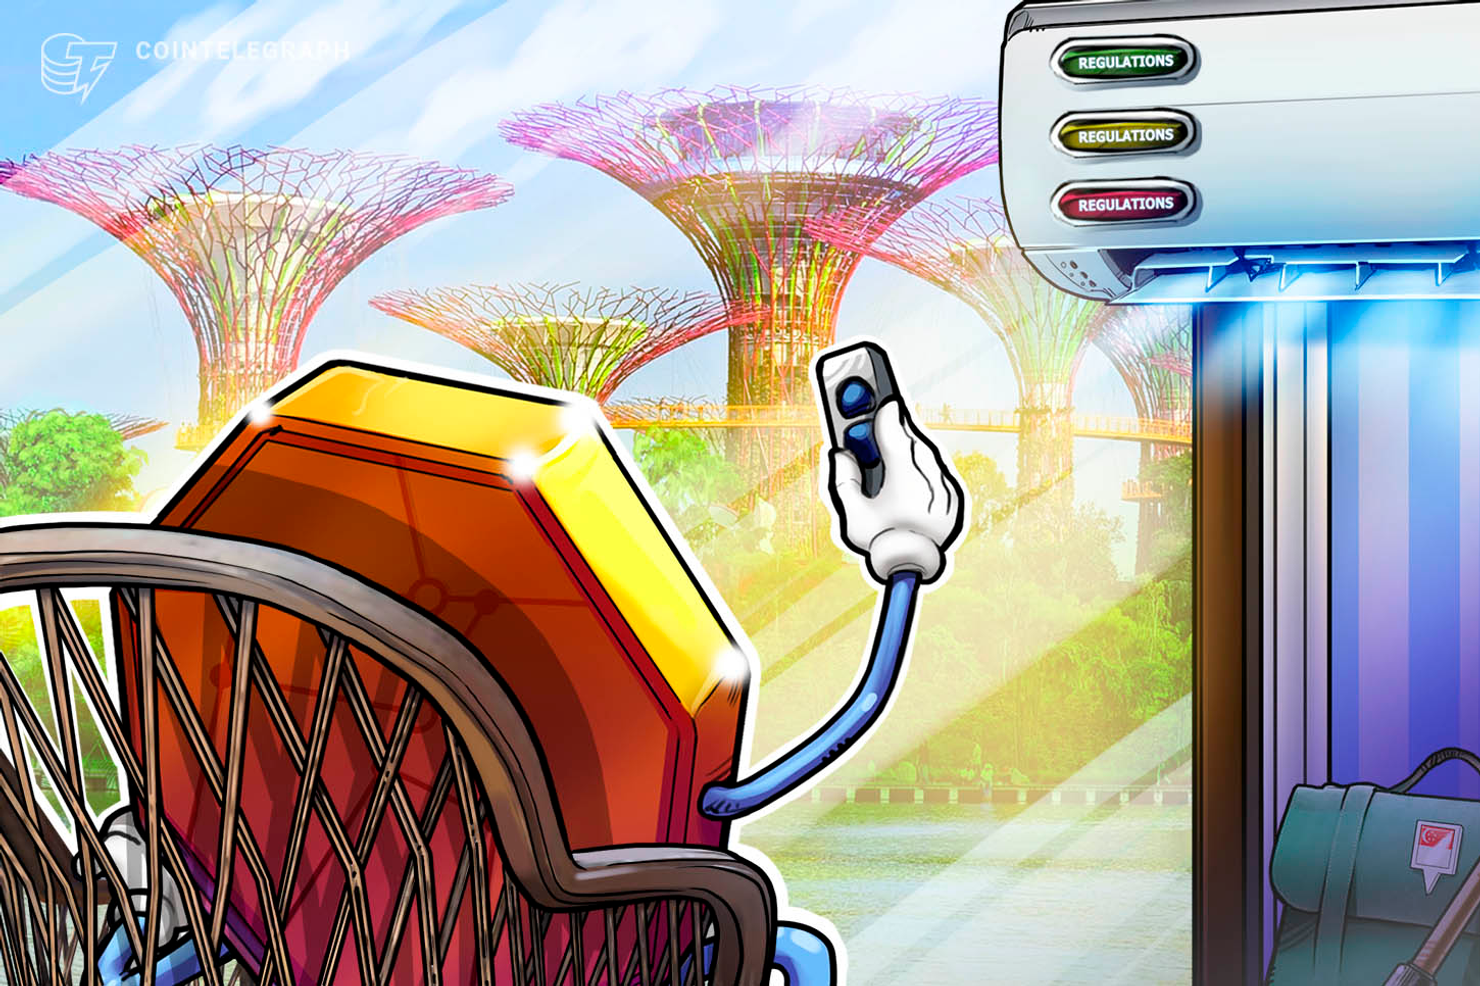 Singapore Crypto Association Launches Code of Practice